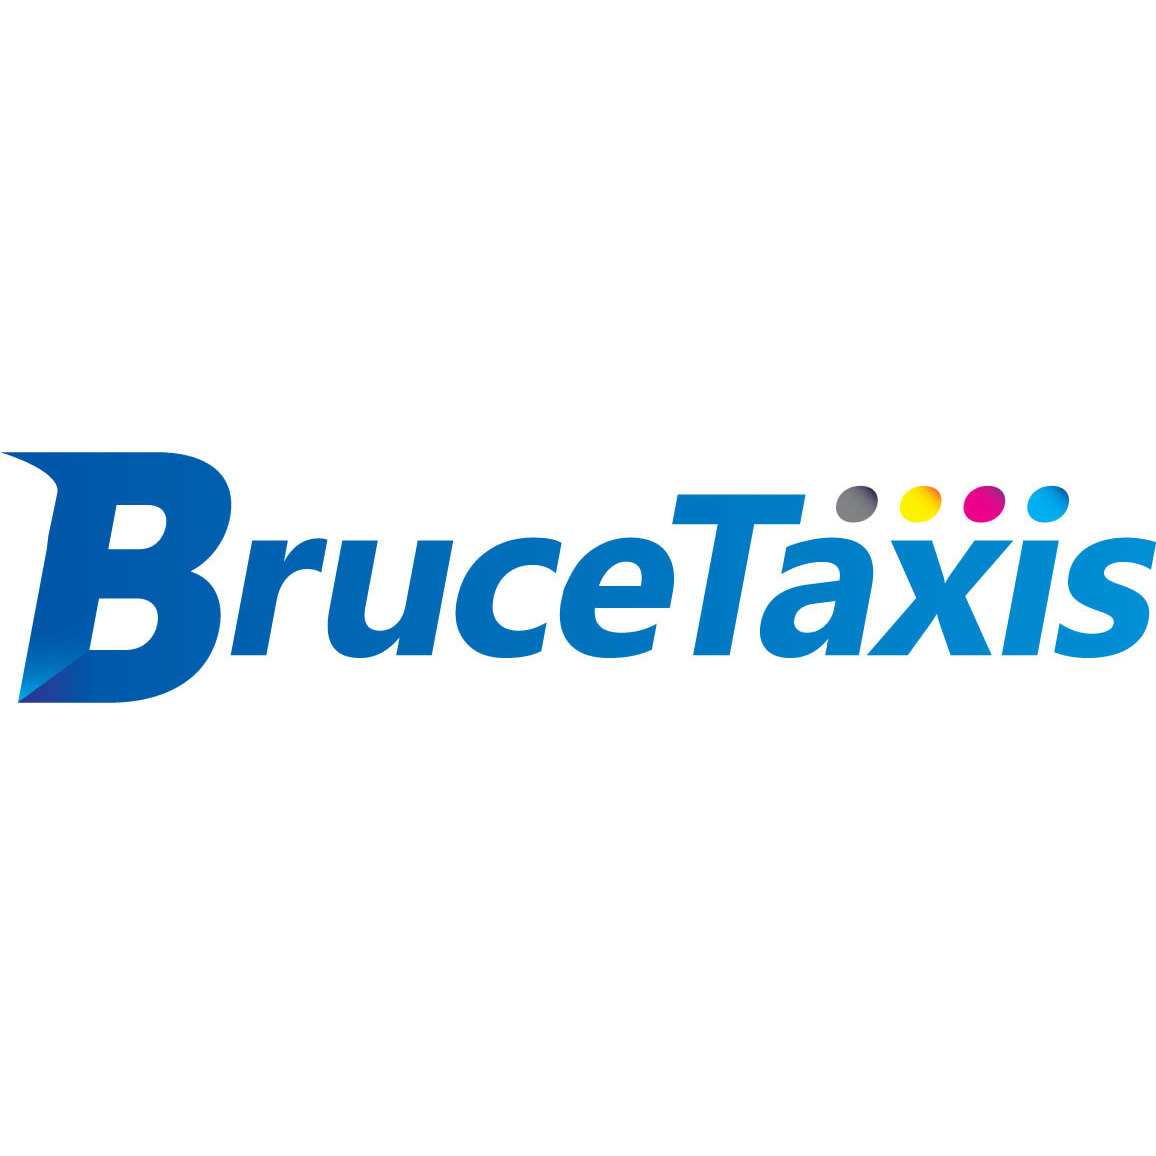 Bruce Taxis - Falkirk, Stirlingshire FK2 7XJ - 01324 636000 | ShowMeLocal.com